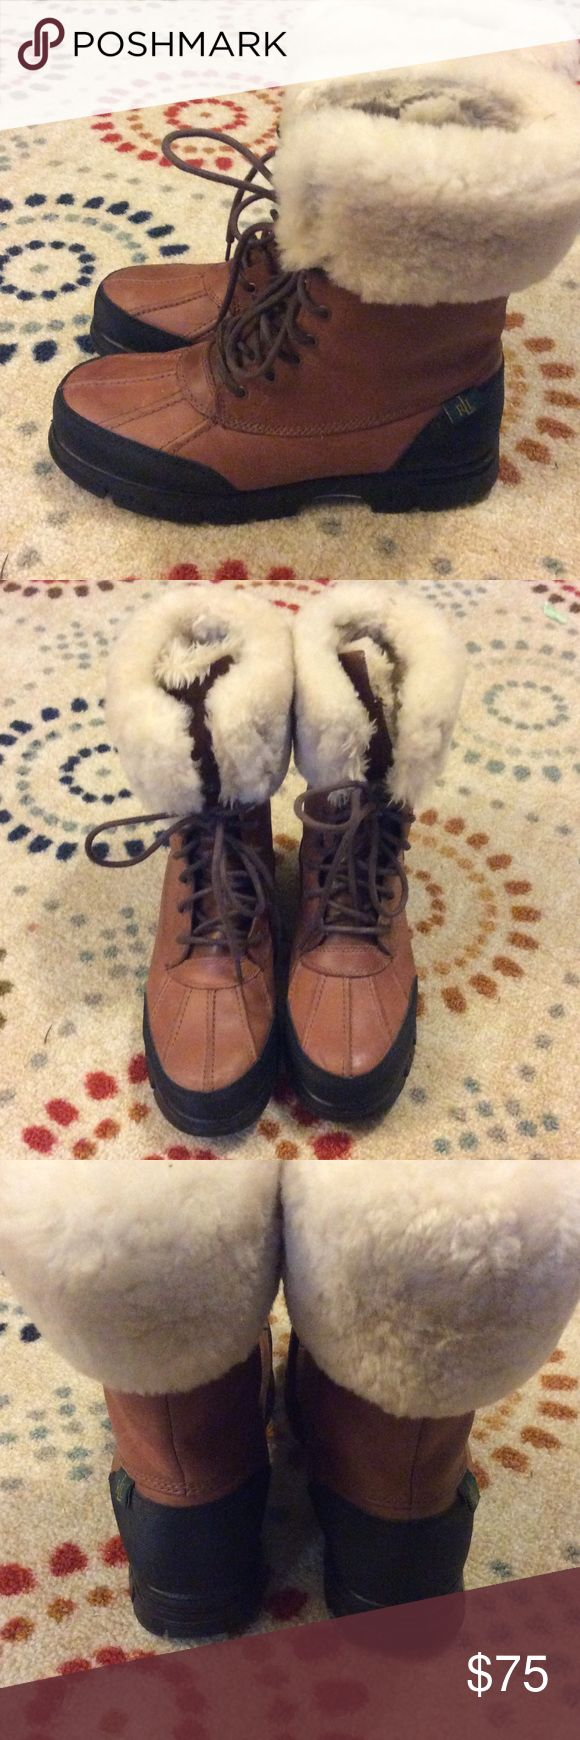 🌺Womens Ralph Lauren Polo Boots w/ Fur🌺 Ralph Lauren Polo boots with fur are in great condition. Leather. Polo by Ralph Lauren Shoes Winter & Rain Boots